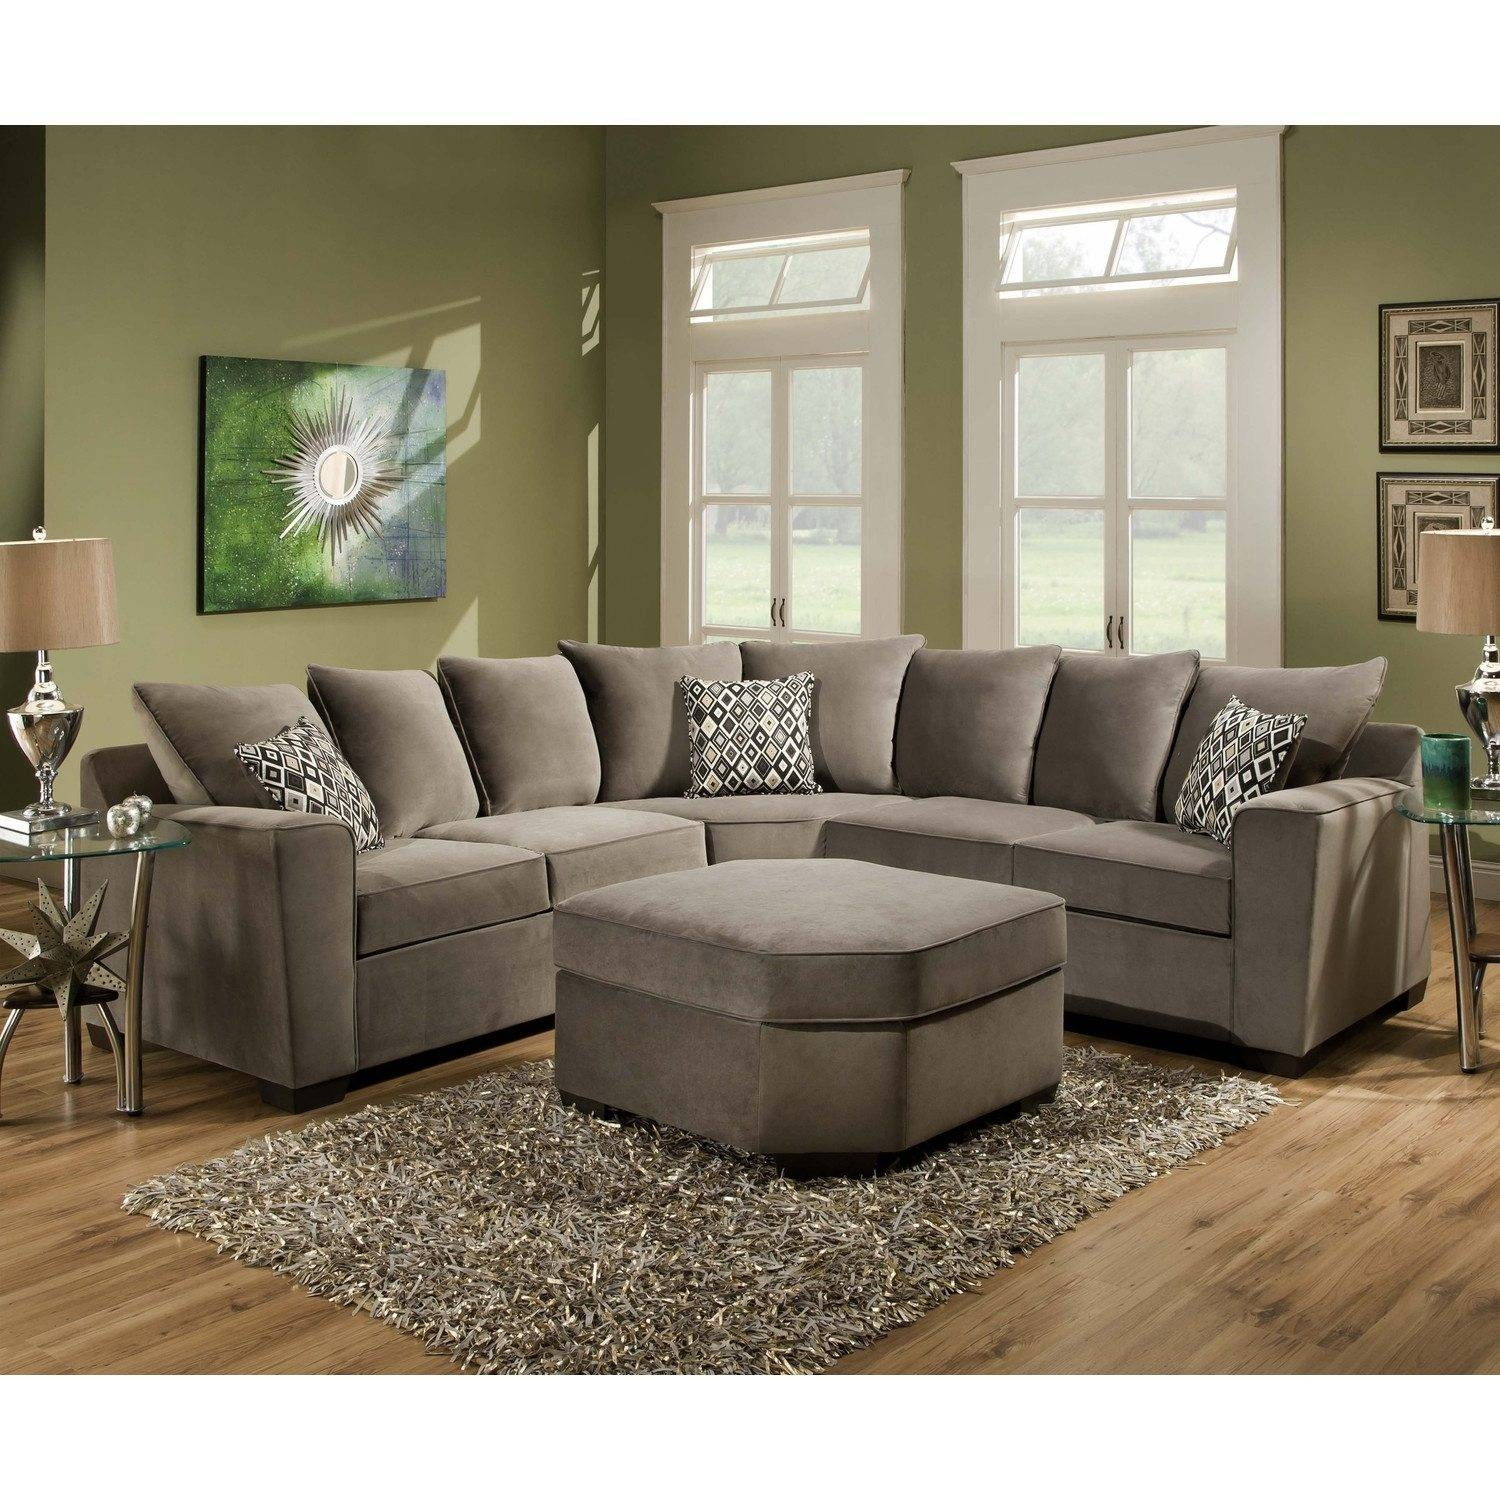 Large Sectionals Sofa: Sectional Sofas Office Chairs Inside with regard to Huge Sofas (Image 22 of 30)